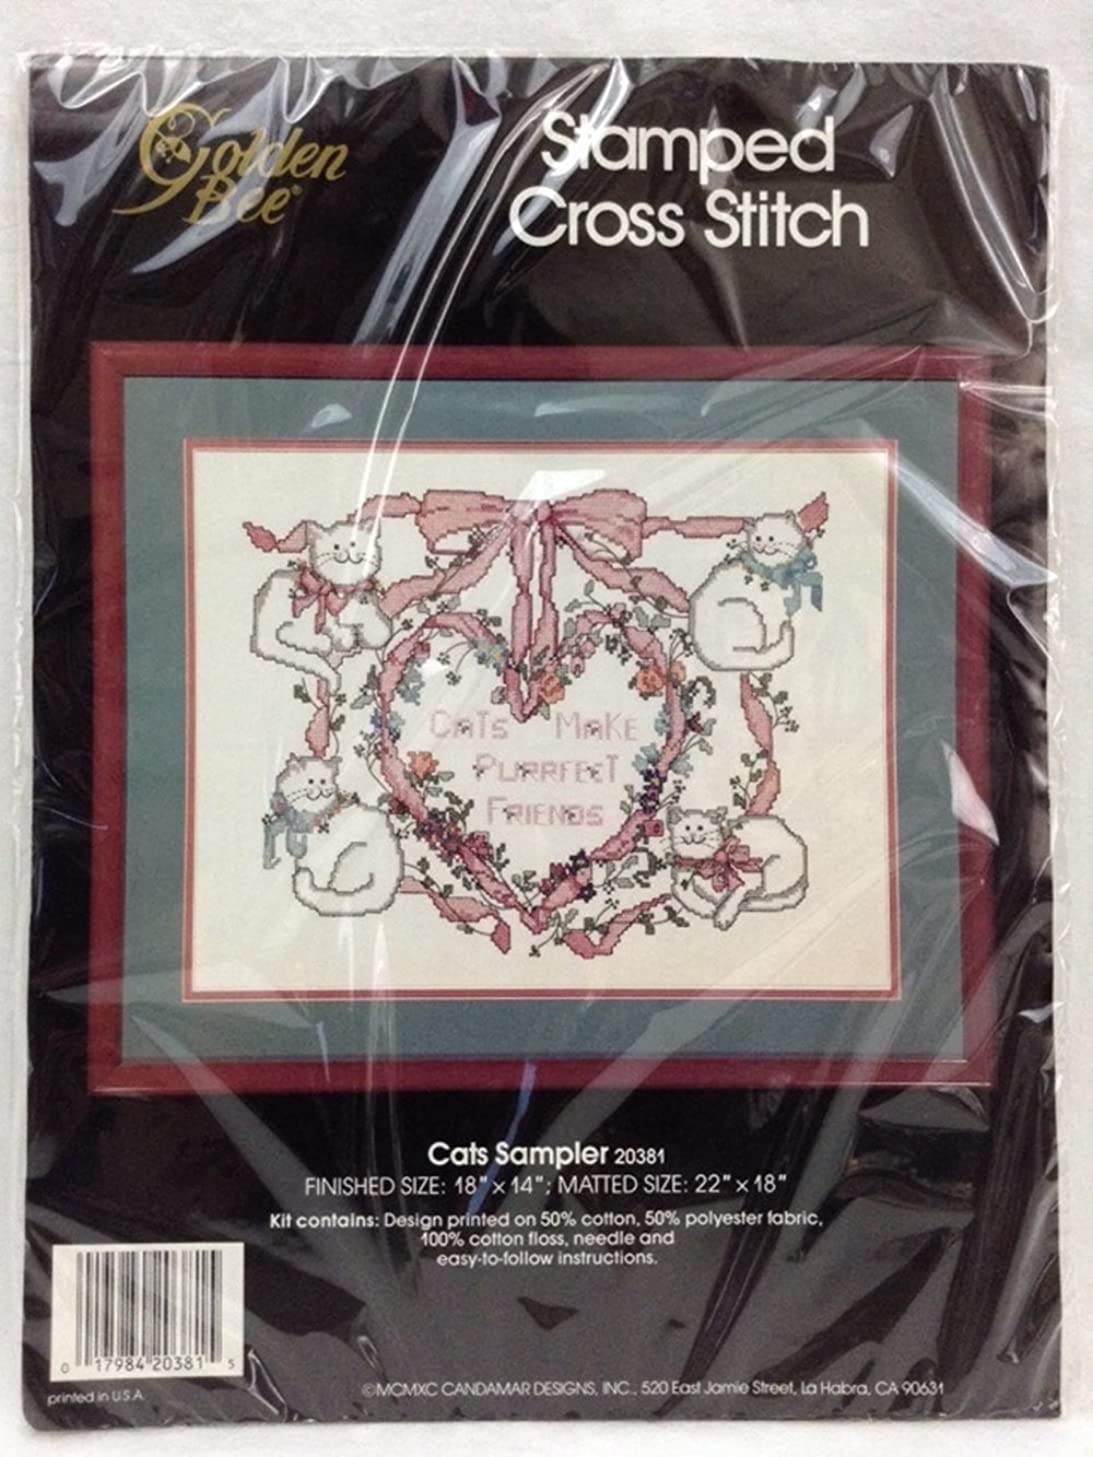 Golden Bee Stamped Cross Stitch Cats Sampler 18x14